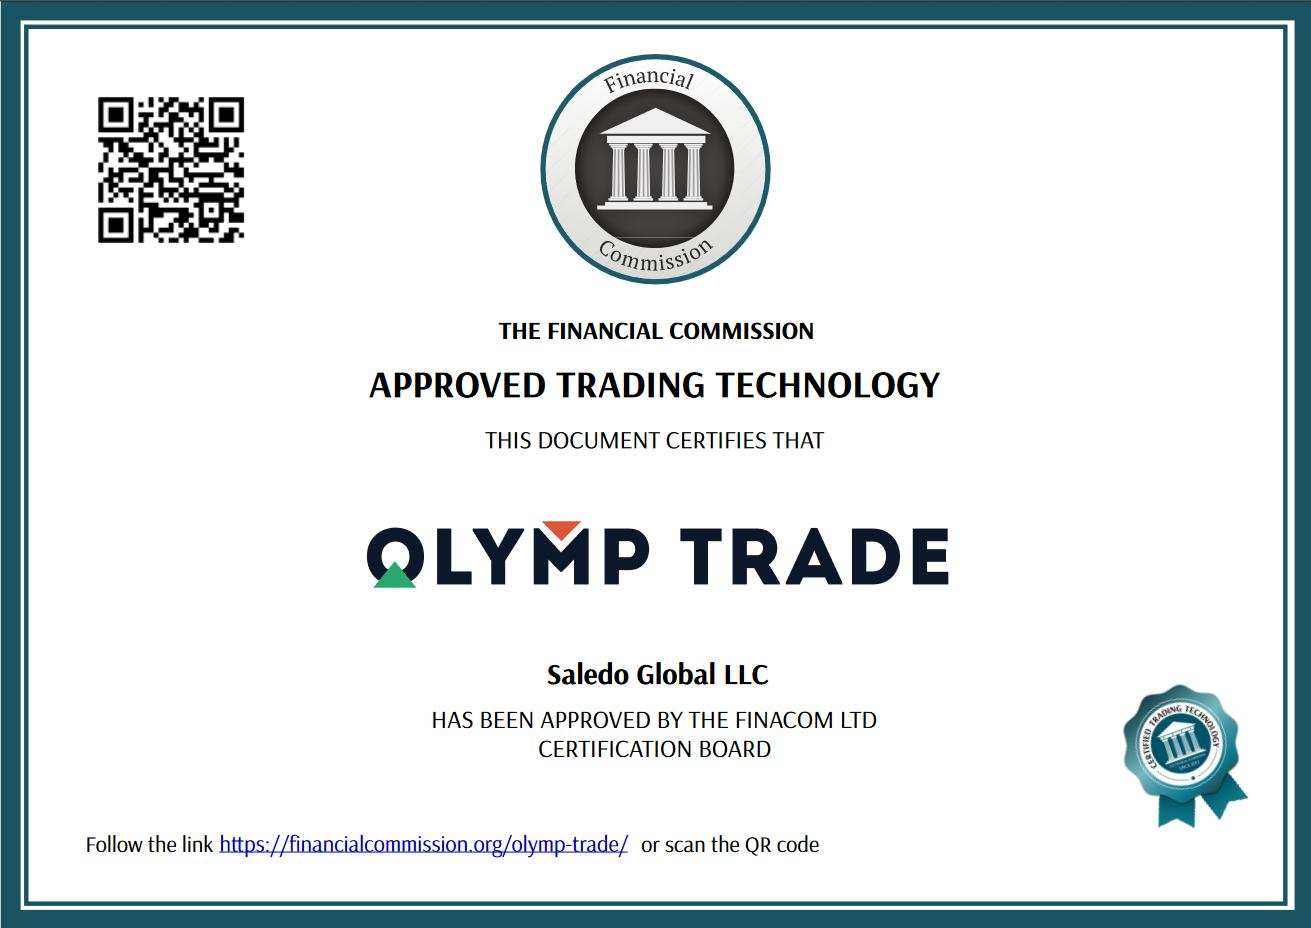 The organization licenses the Olymp Trade